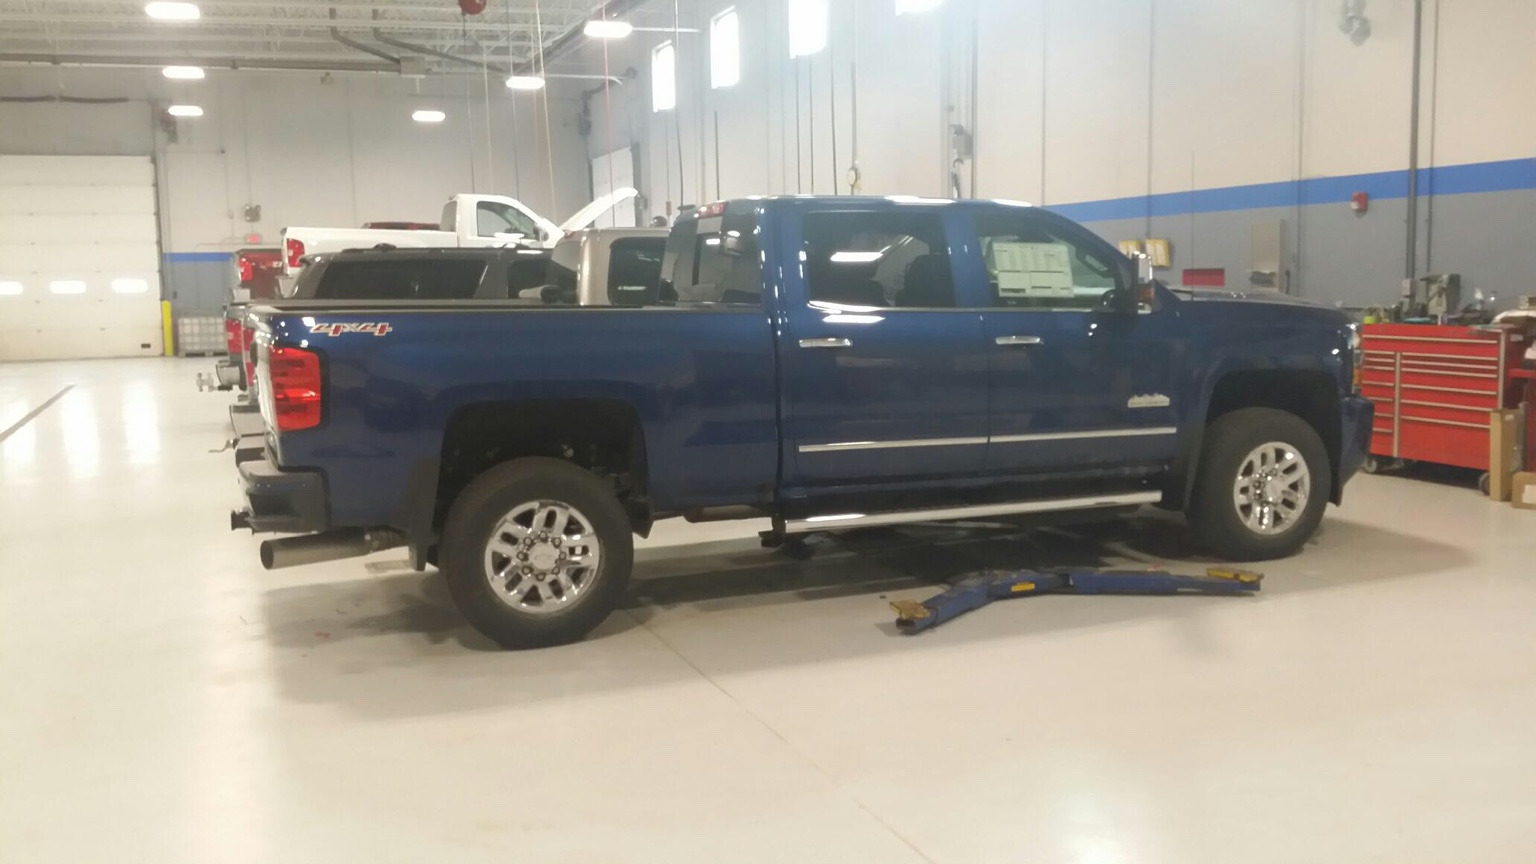 Removing duramax 4x4 silverado and high country on tailgate leveling kit next then tire selection